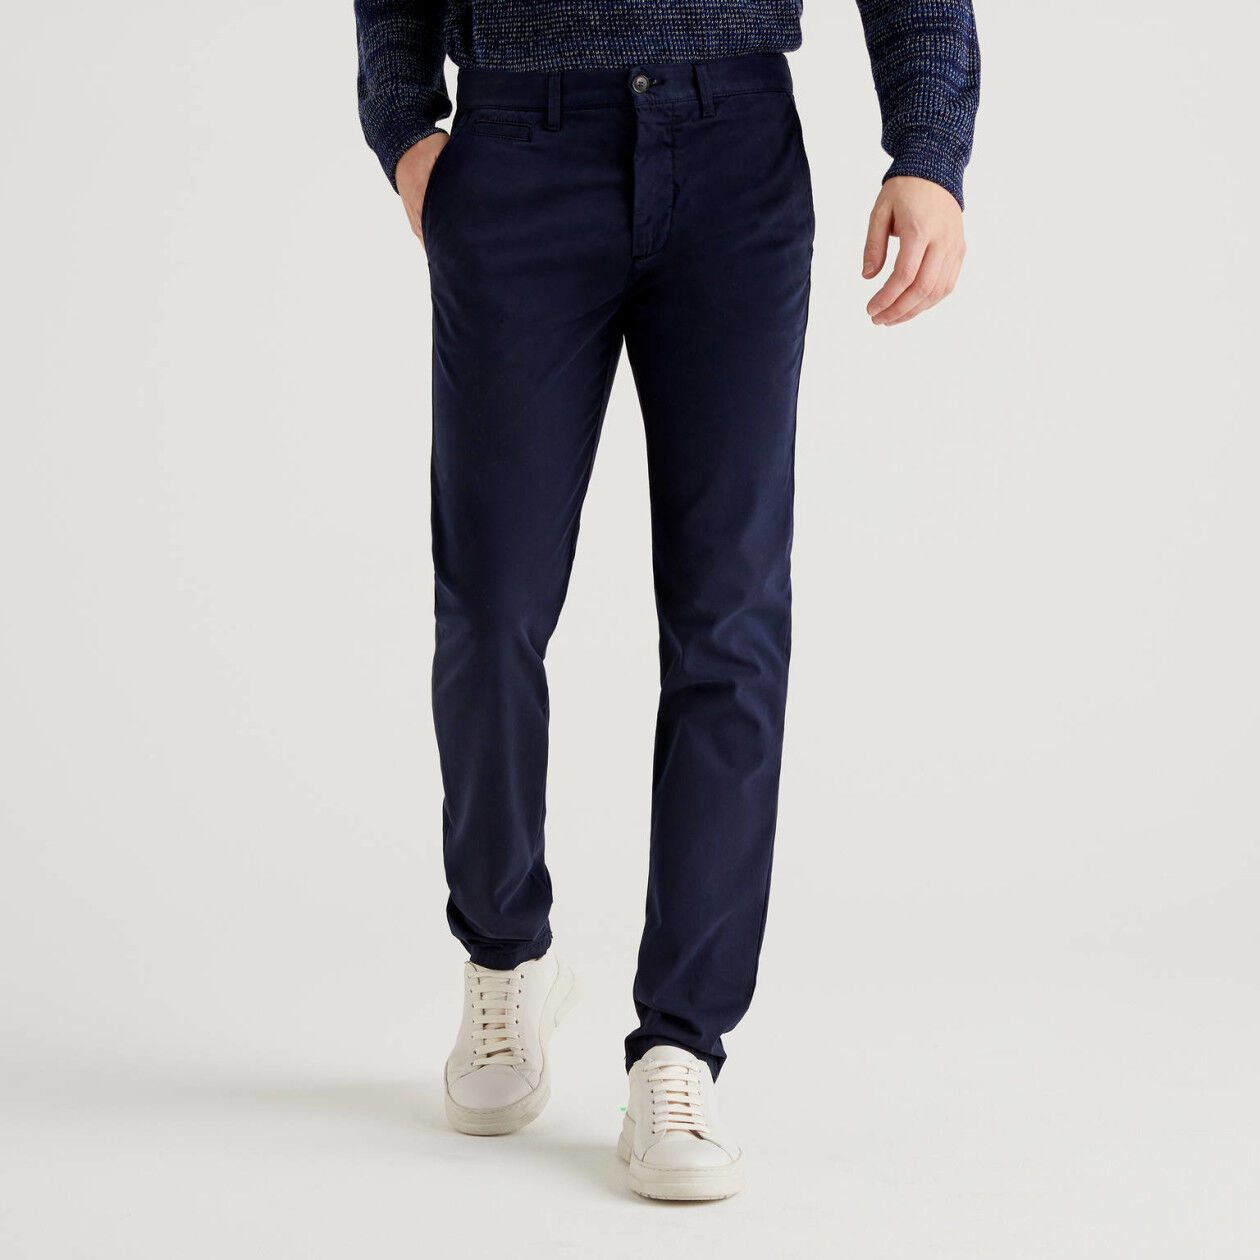 Dark blue slim fit chinos